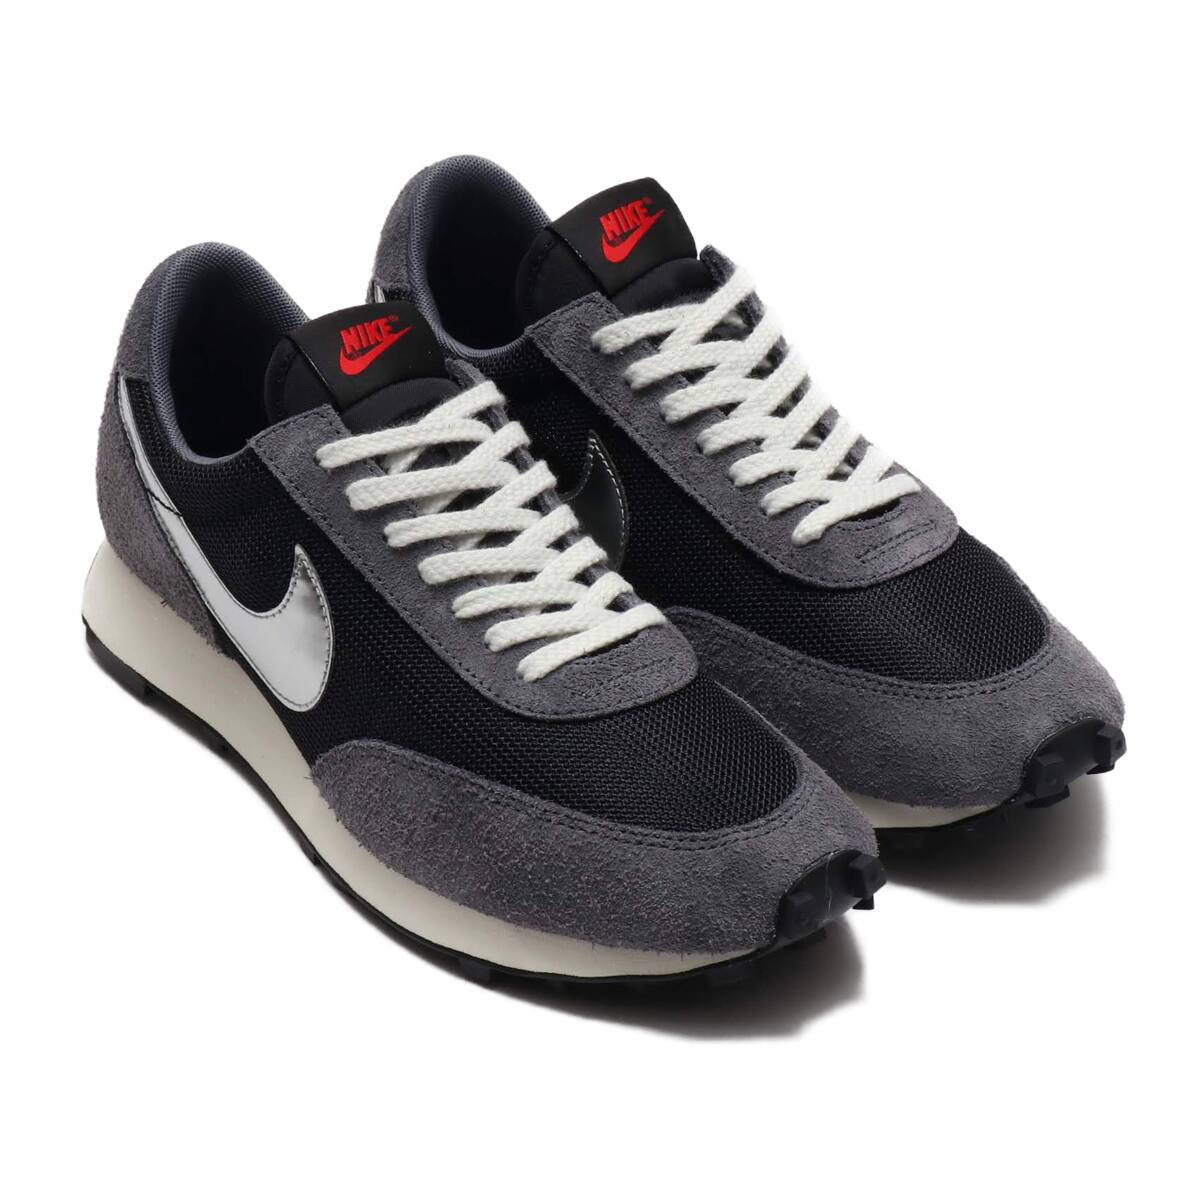 NIKE DBREAK SP BLACK/METALLIC SILVER-DARK GREY 19FA-S_photo_large